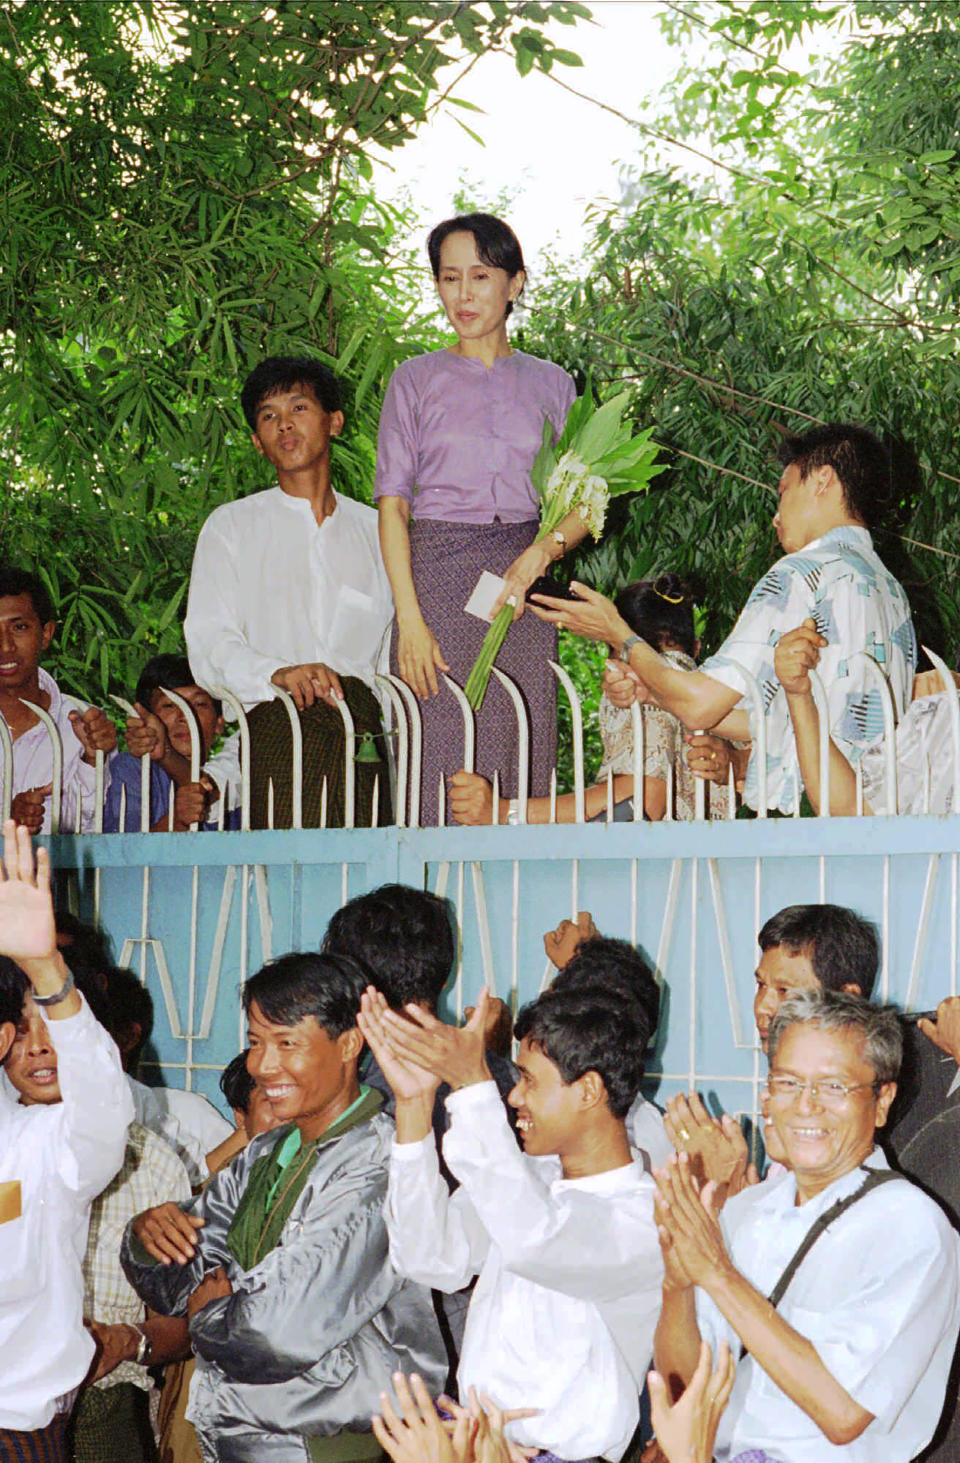 In this July 11, 1995, file photo, pro-democracy leader Aung San Suu Kyi stands behind her gate to greet a crowd of some 1,000 people who have come to see her after her release from house arrest in Yangon, Myanmar. After Myanmar's military staged a coup Monday, Feb. 1, 2021, Aung San Suu Kyi finds herself back under house arrest. But this time, her standoff with the generals comes after she has sorely disappointed many once-staunch supporters in the international community. (AP Photo/Stuart Isett, File)